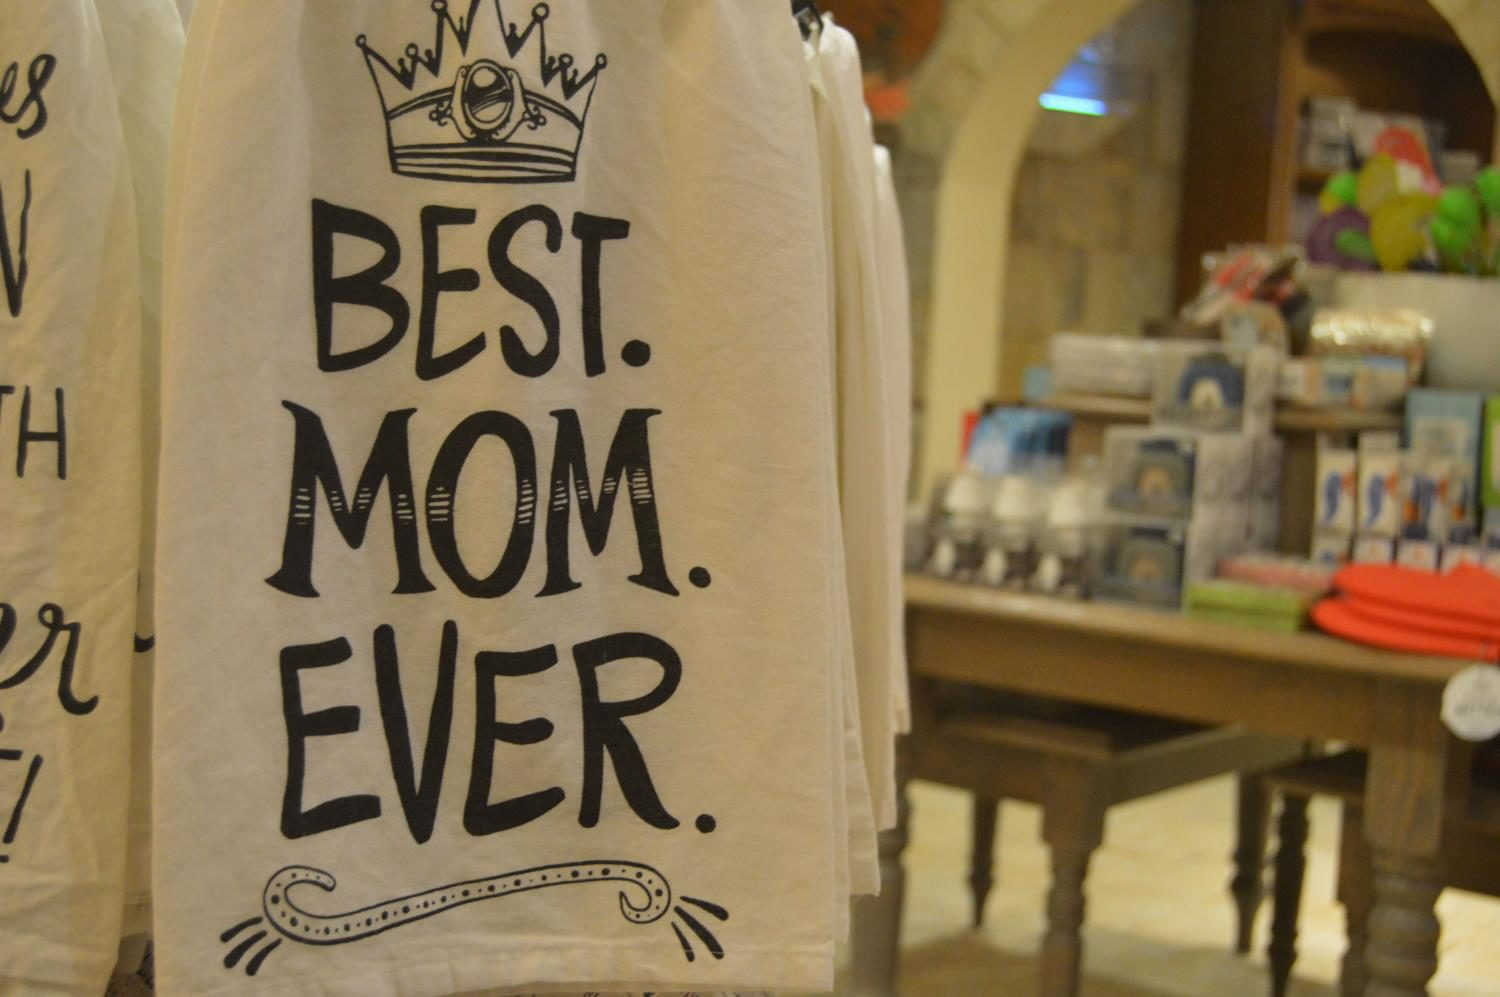 The Best Mom Ever dish towel, $10, is a useful everyday gift your mom will be sure to display in the kitchen.